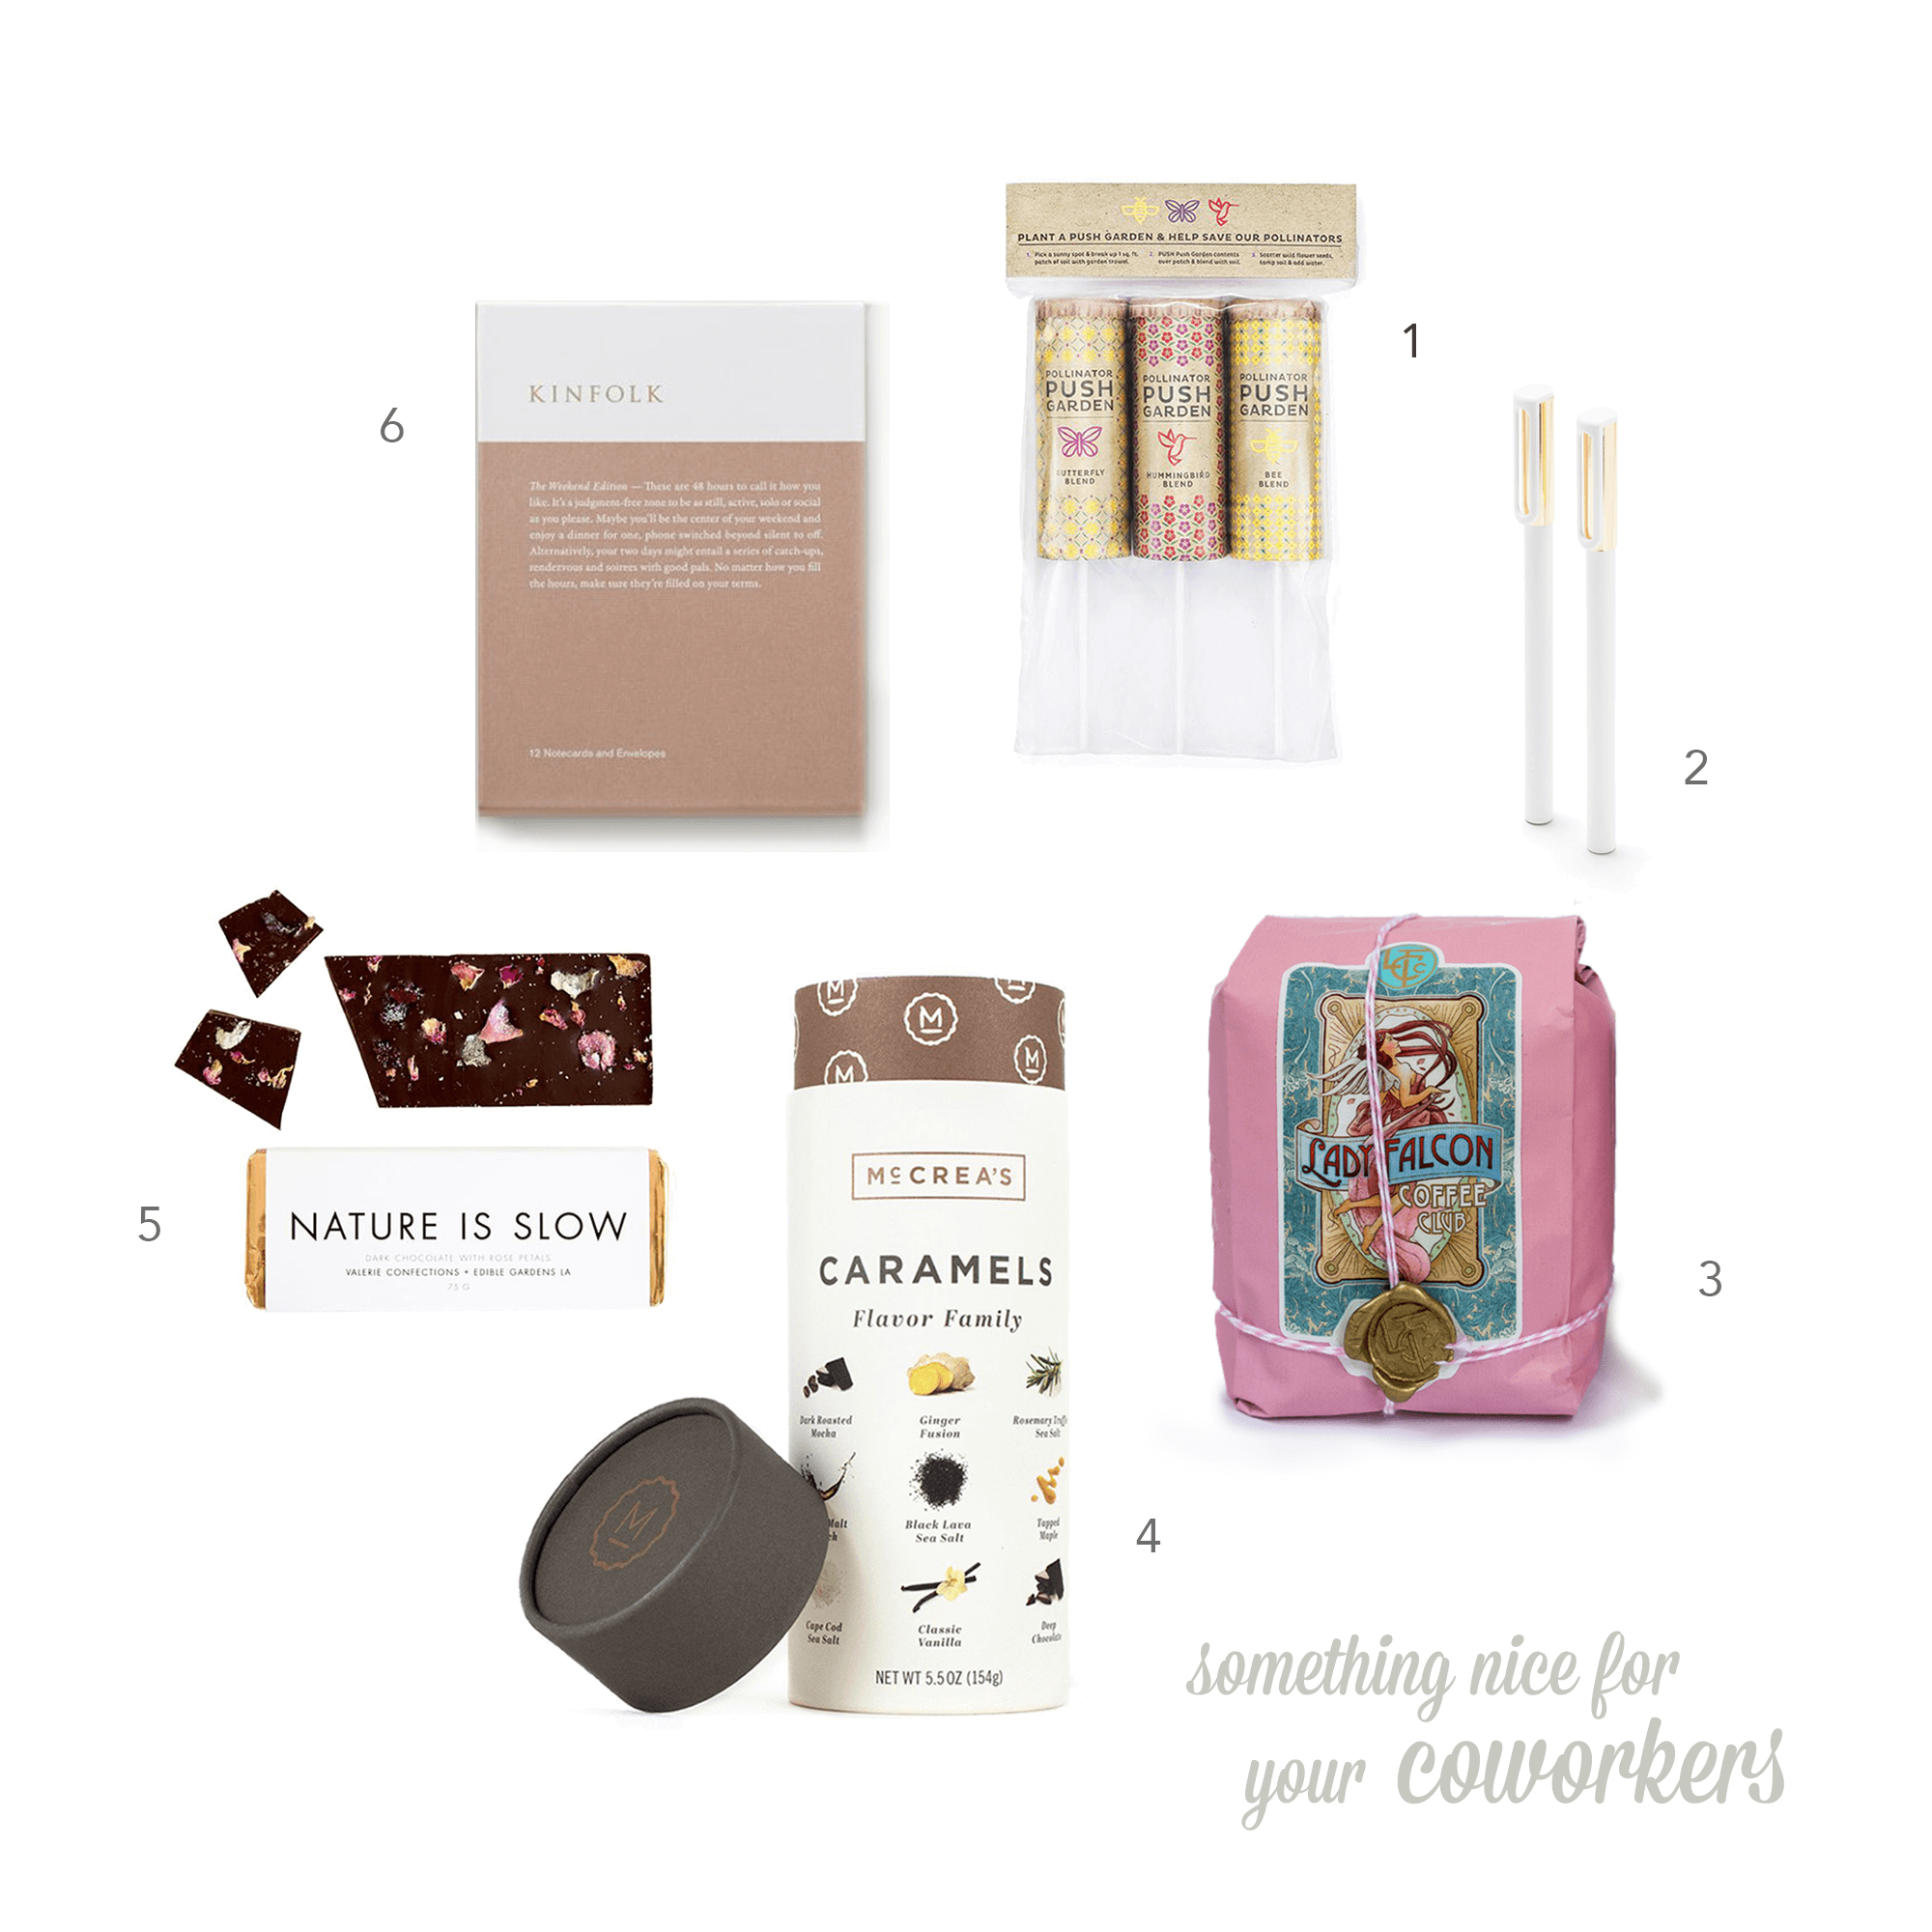 01  Pollinator  Push Garden  $18  02  Poppin  White + Gold Tip-Top Rollerball Pens  $12  03  San Francisco-ground Lady Falcon  Coffee Care Package  $24.25  04  McCrea's  Flavor Family Caramels  $14.95  05  Valerie Confections + Edible Gardens  Nature Is Slow chocolate $10